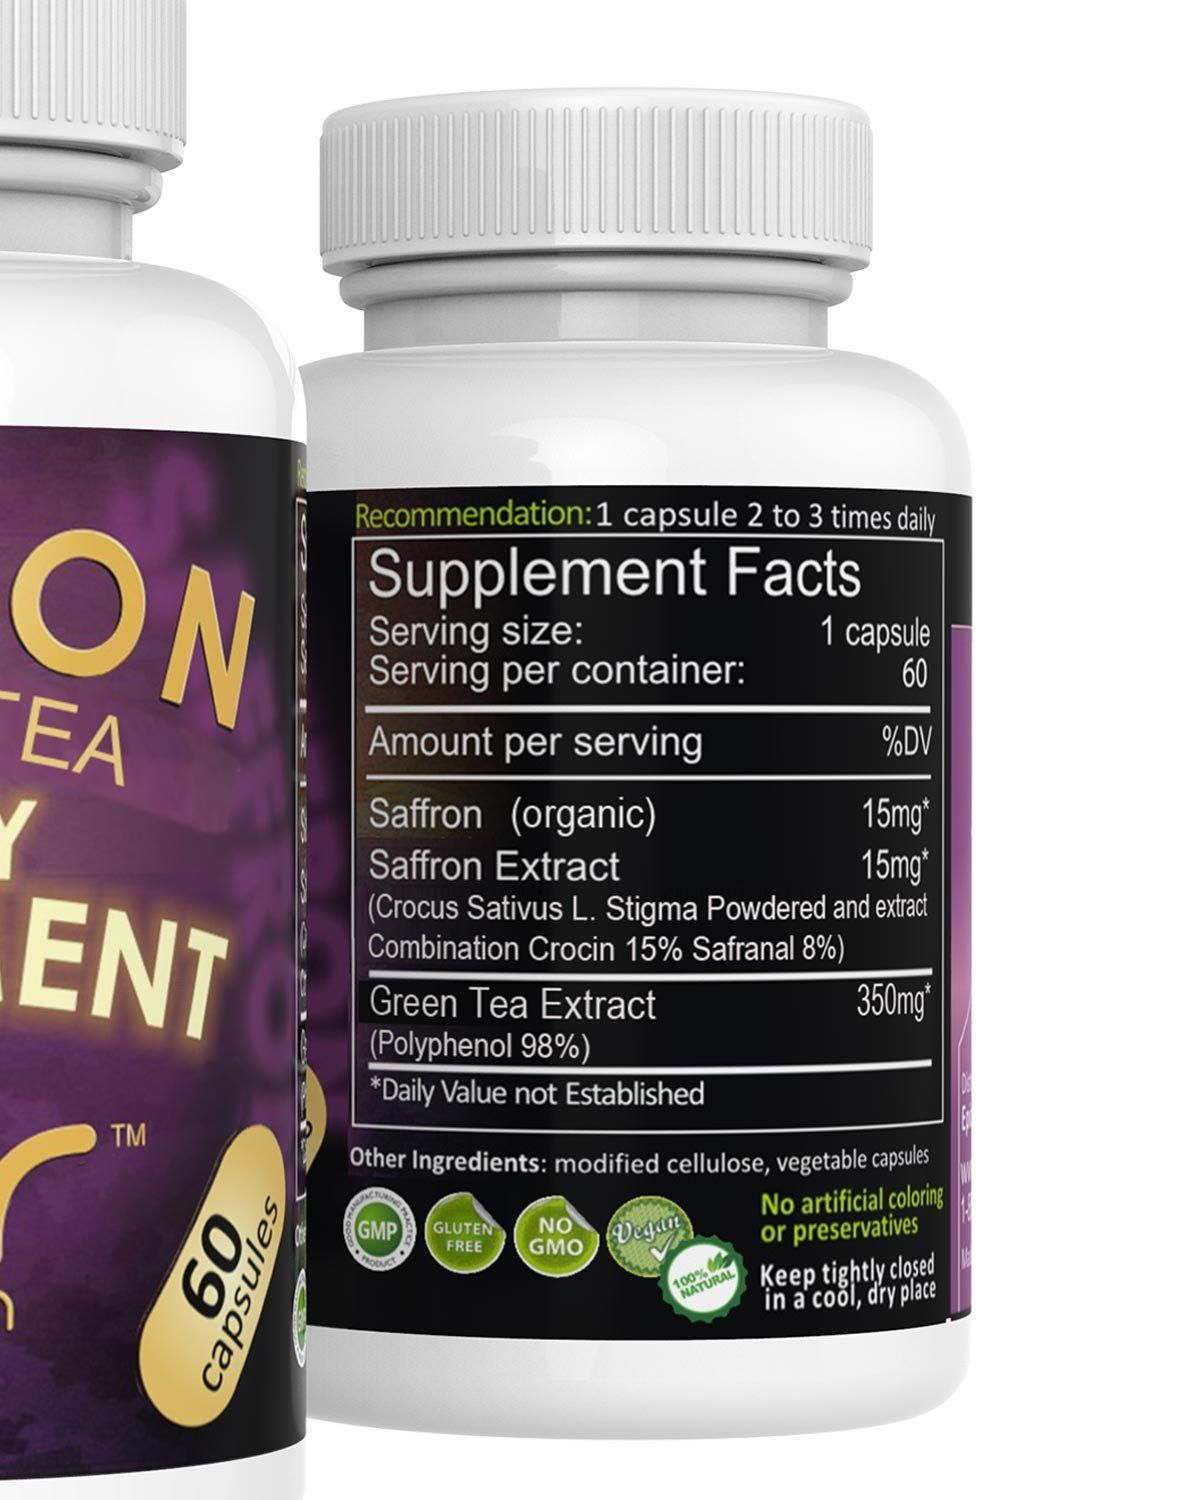 Green Tea Extract Supplement With Egcg Saffron Saffron Extract